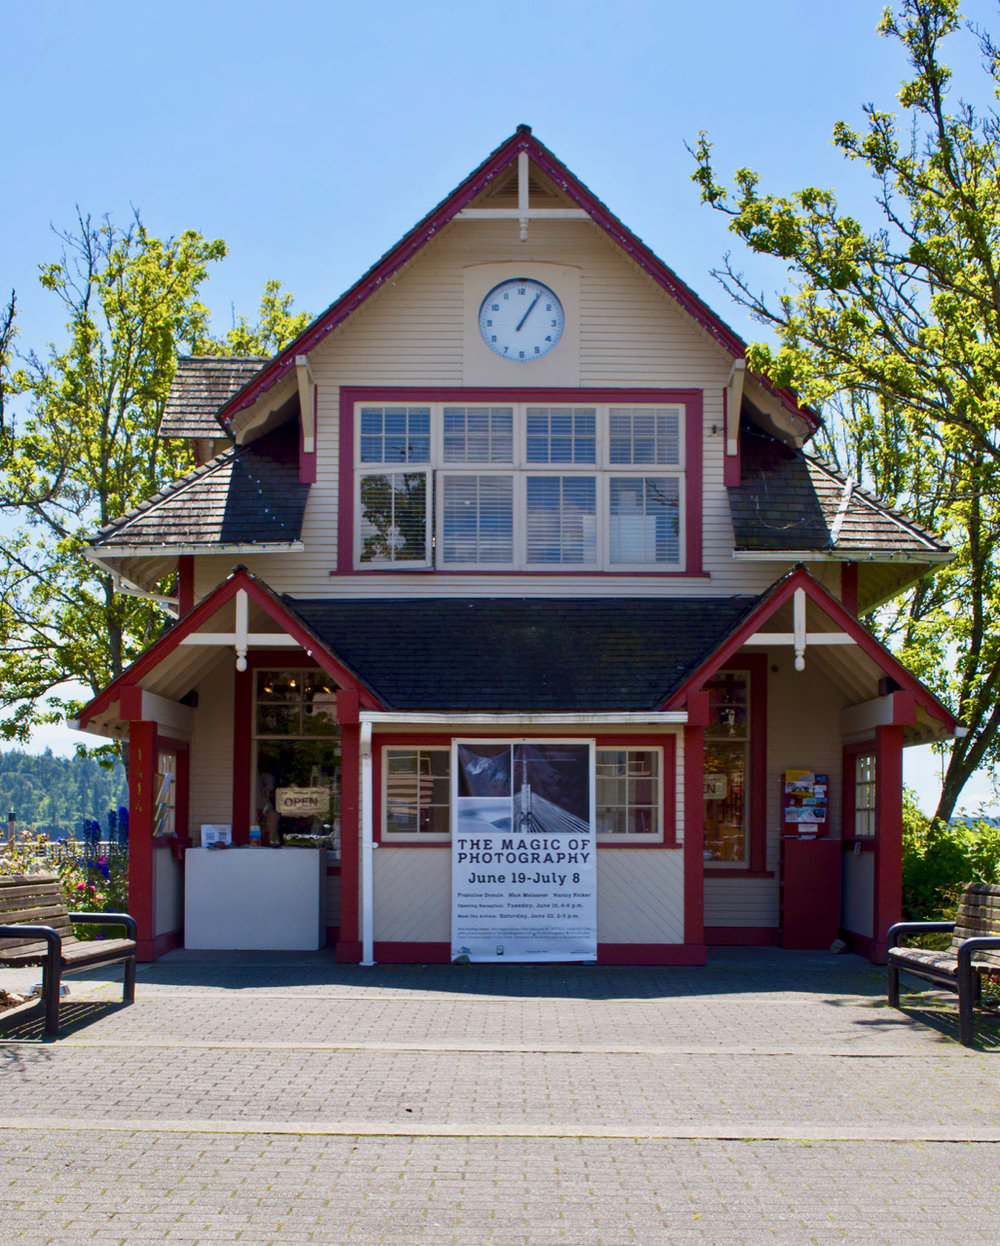 Ferry Building Gallery on the Ambleside waterfront, West Vancouver. Photo © West Vancouver Memorial Library